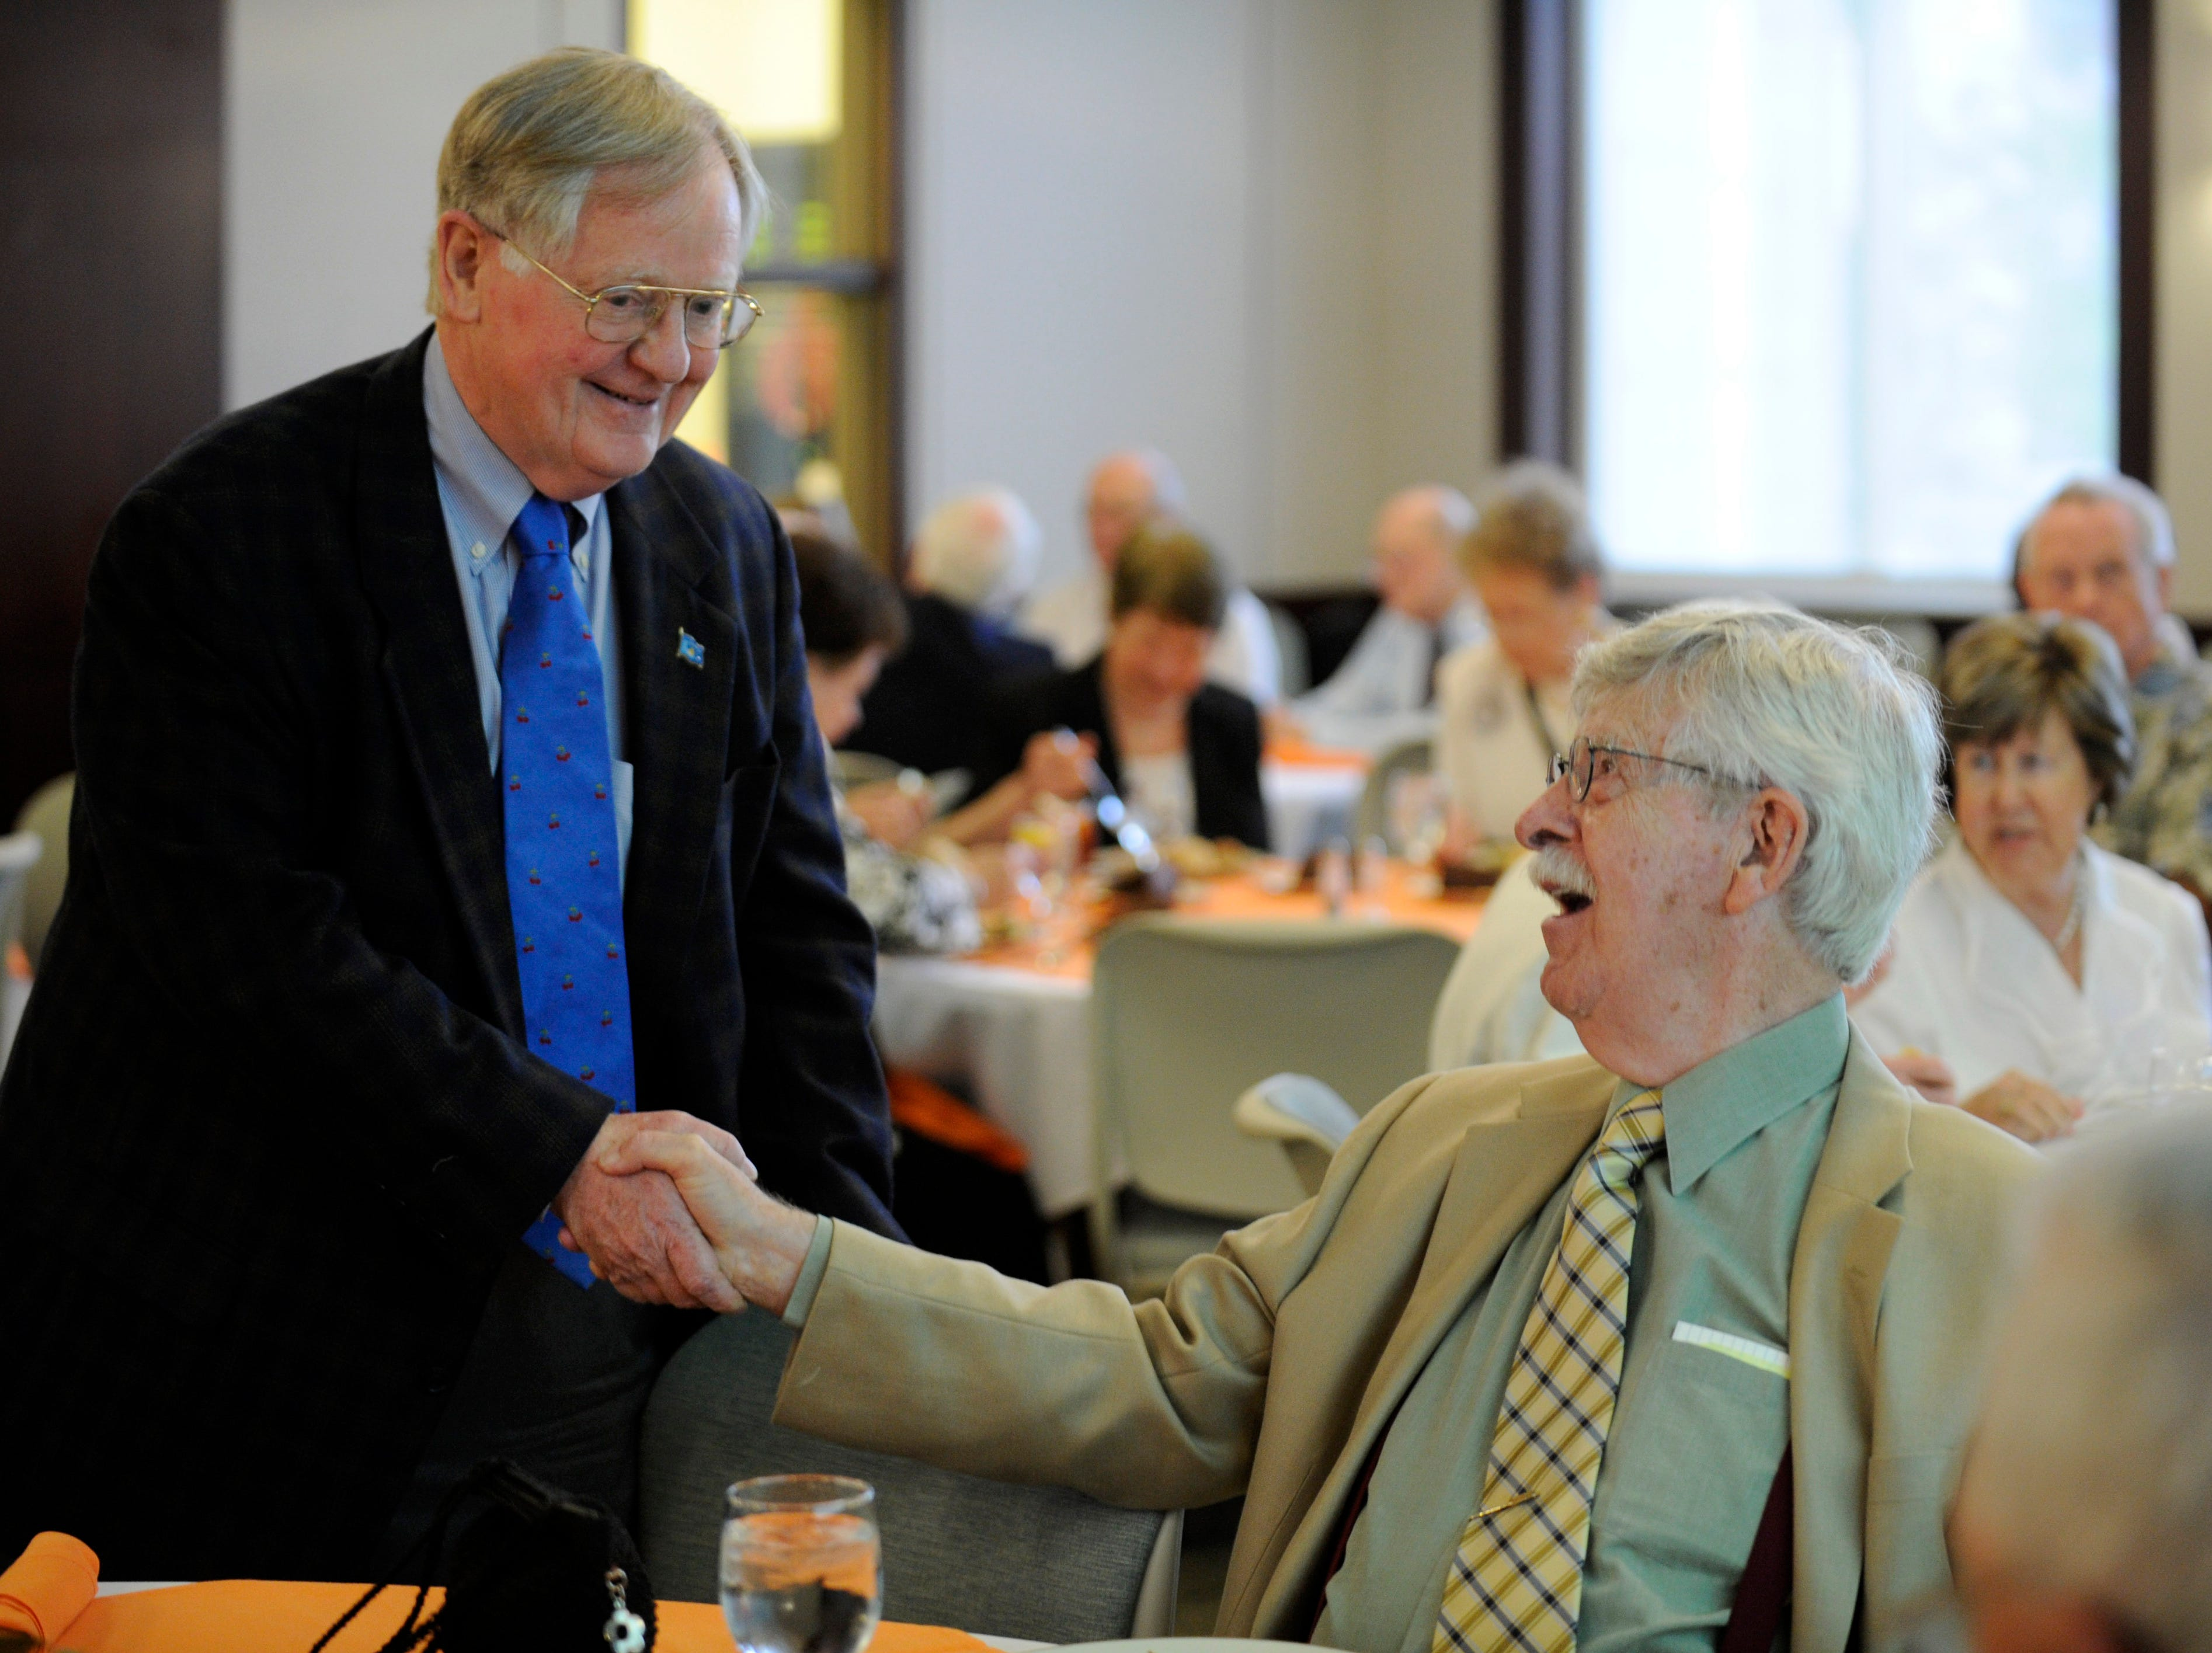 Former Ambassador to Poland and former Knoxville Mayor Victor Ashe congratulates Charlie Daniel as as former Senators Howard Baker and Nancy Kassebaum celebrate the work of the Knoxville News Sentinel cartoonist at the Baker Center on Thursday, May 17, 2012.